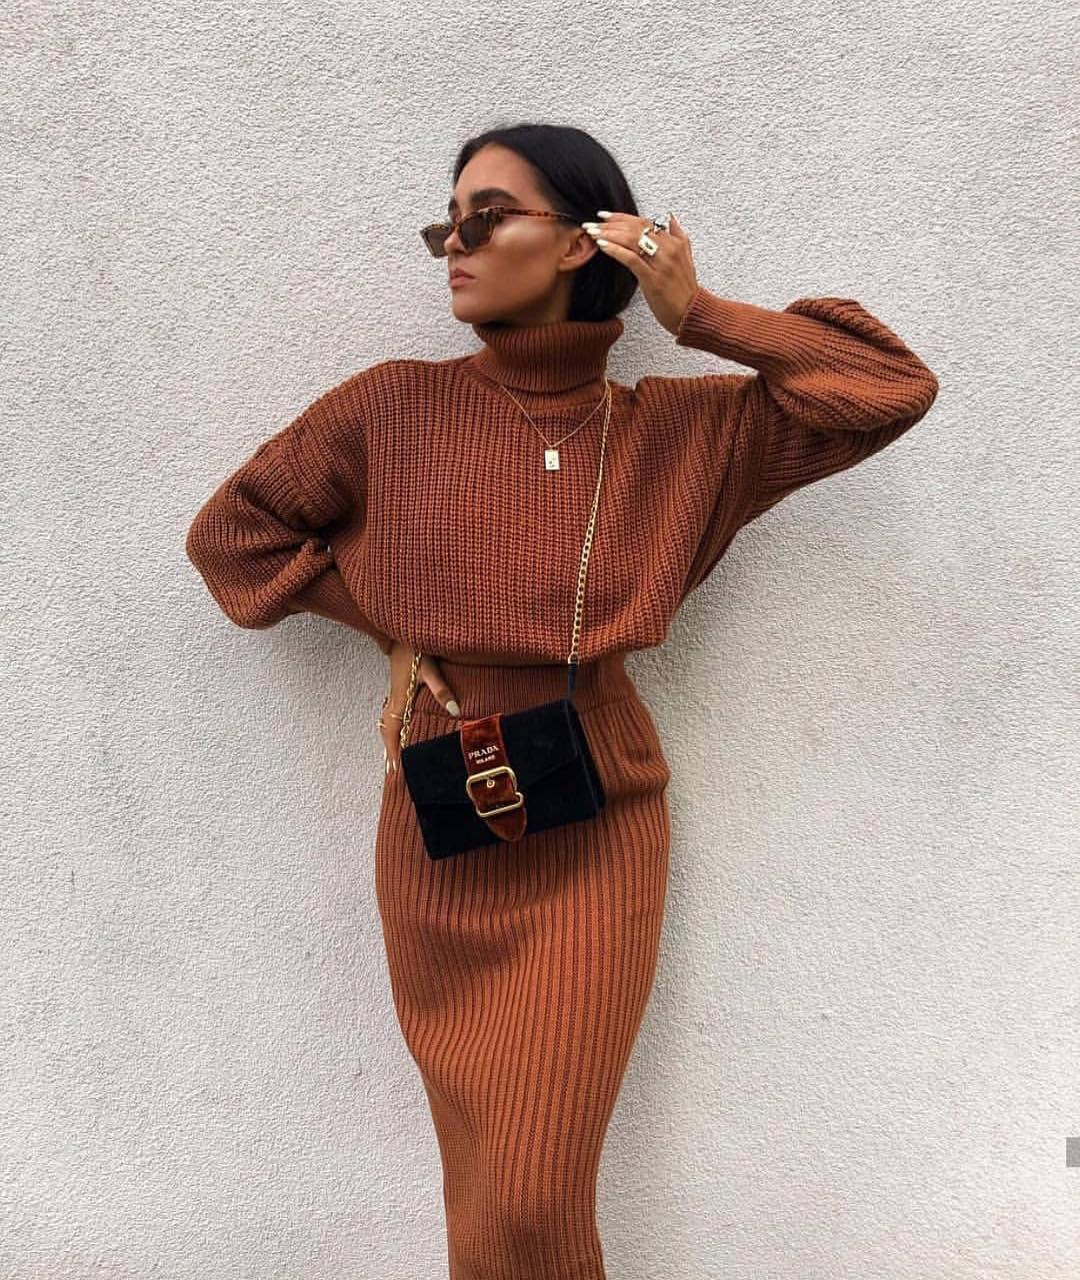 Two Piece Knitted Dress In Maxi Length For Fall 2020